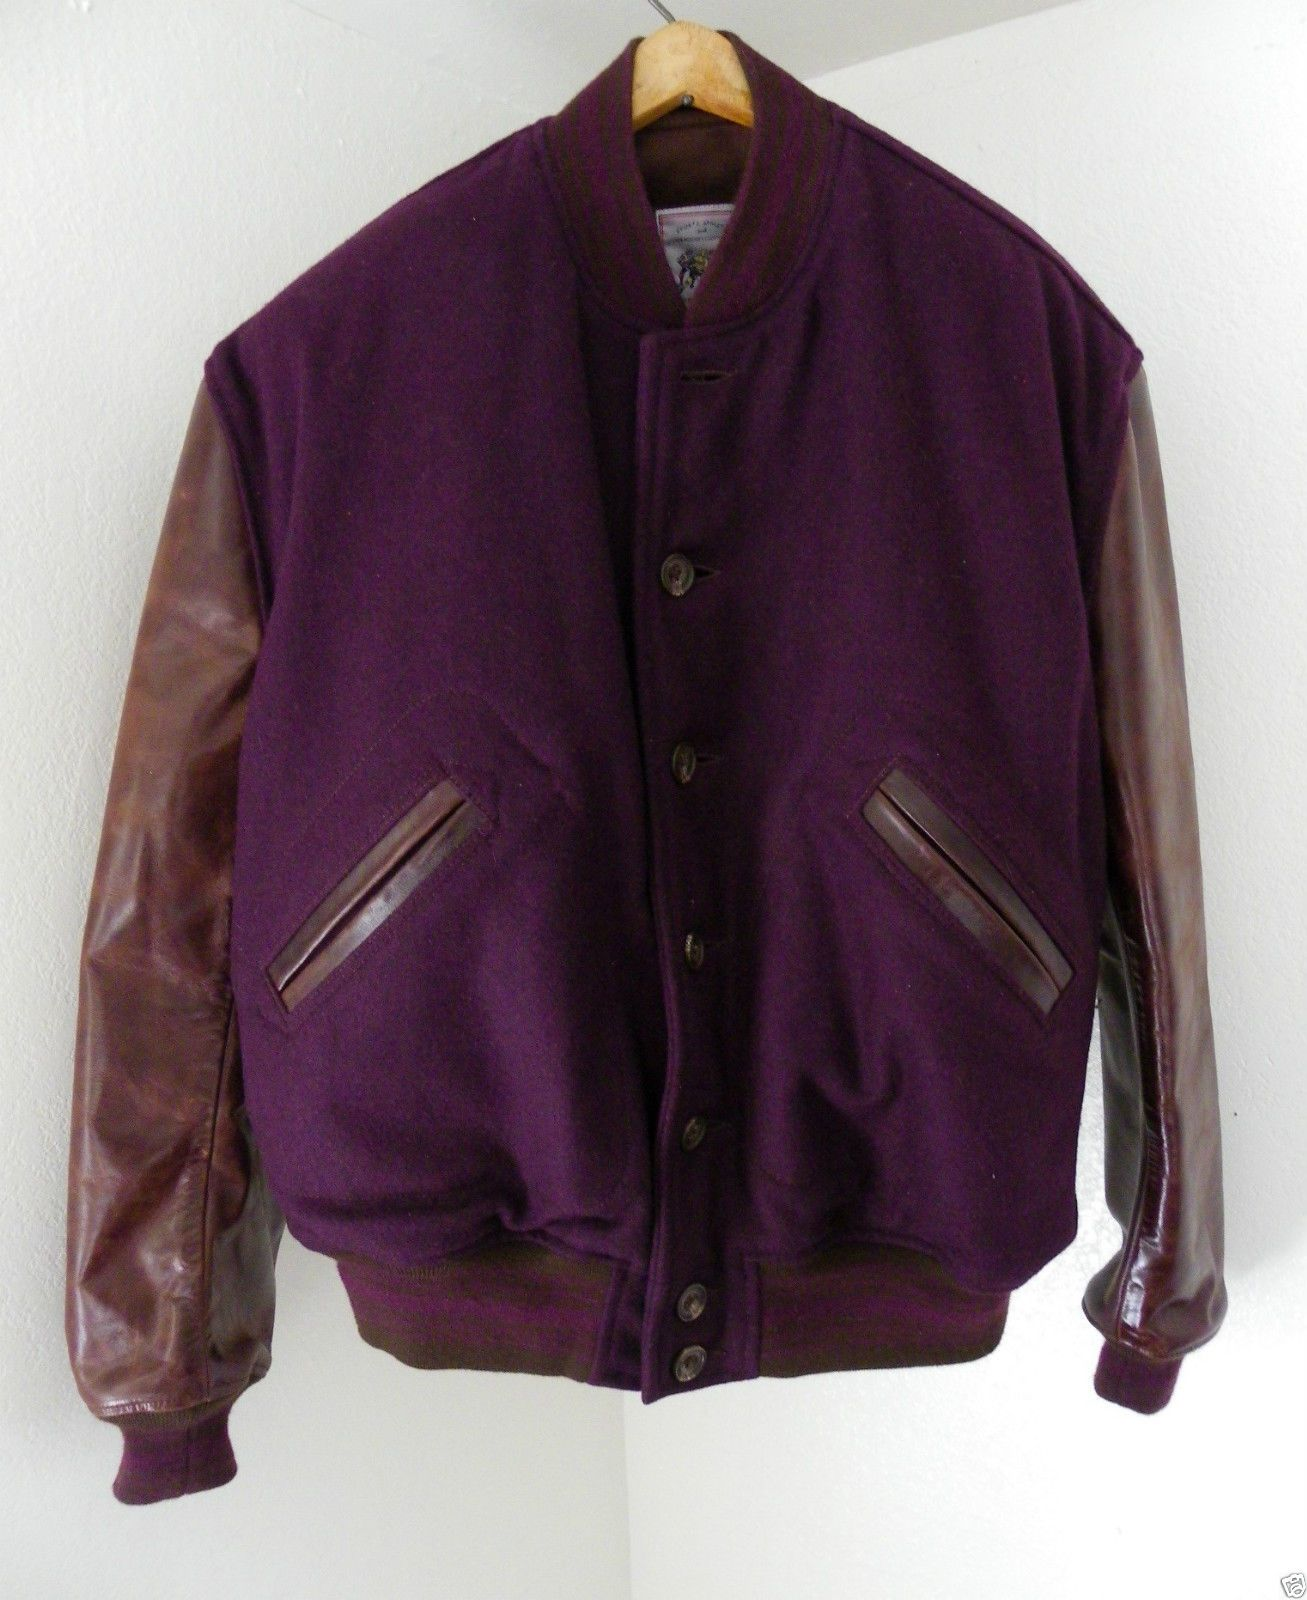 Aero Leather Clothing LETTERMAN Varsity Jacket Purple Wool